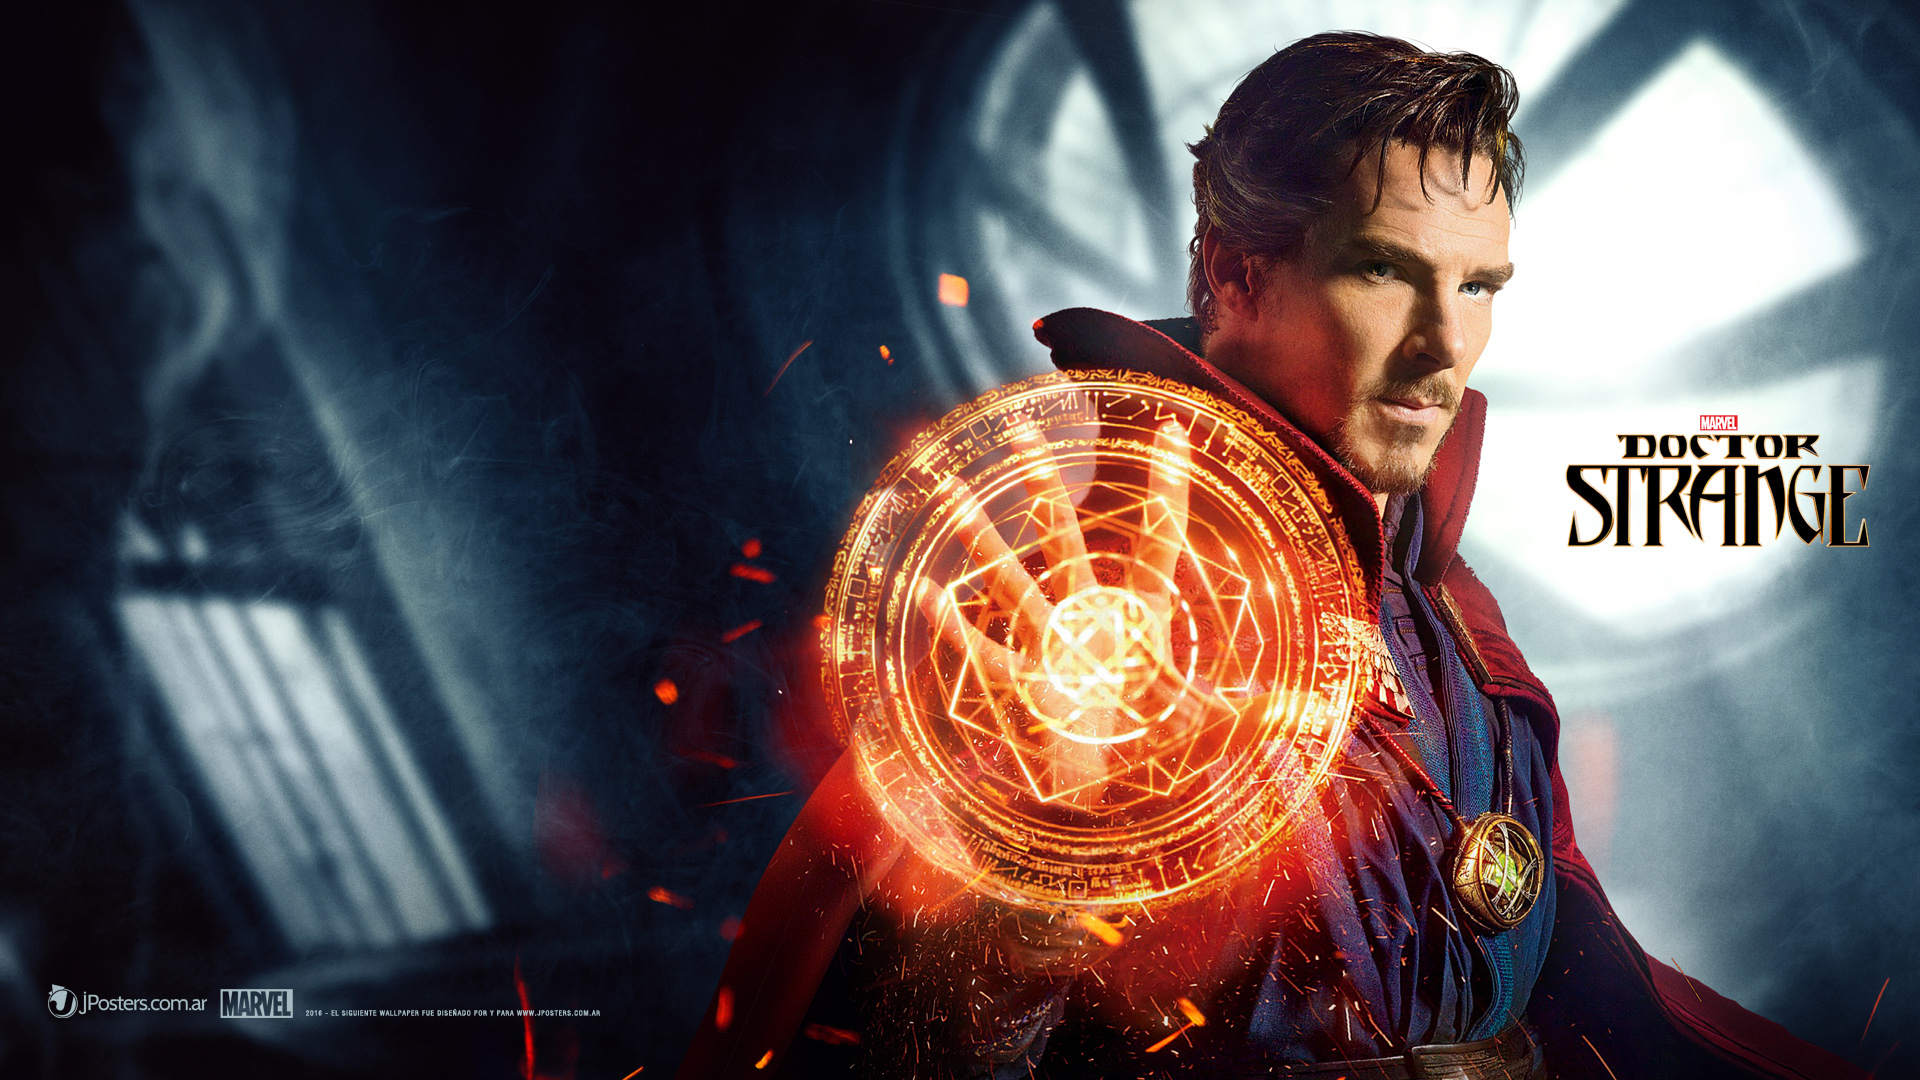 Benedict as doctor strange marvel